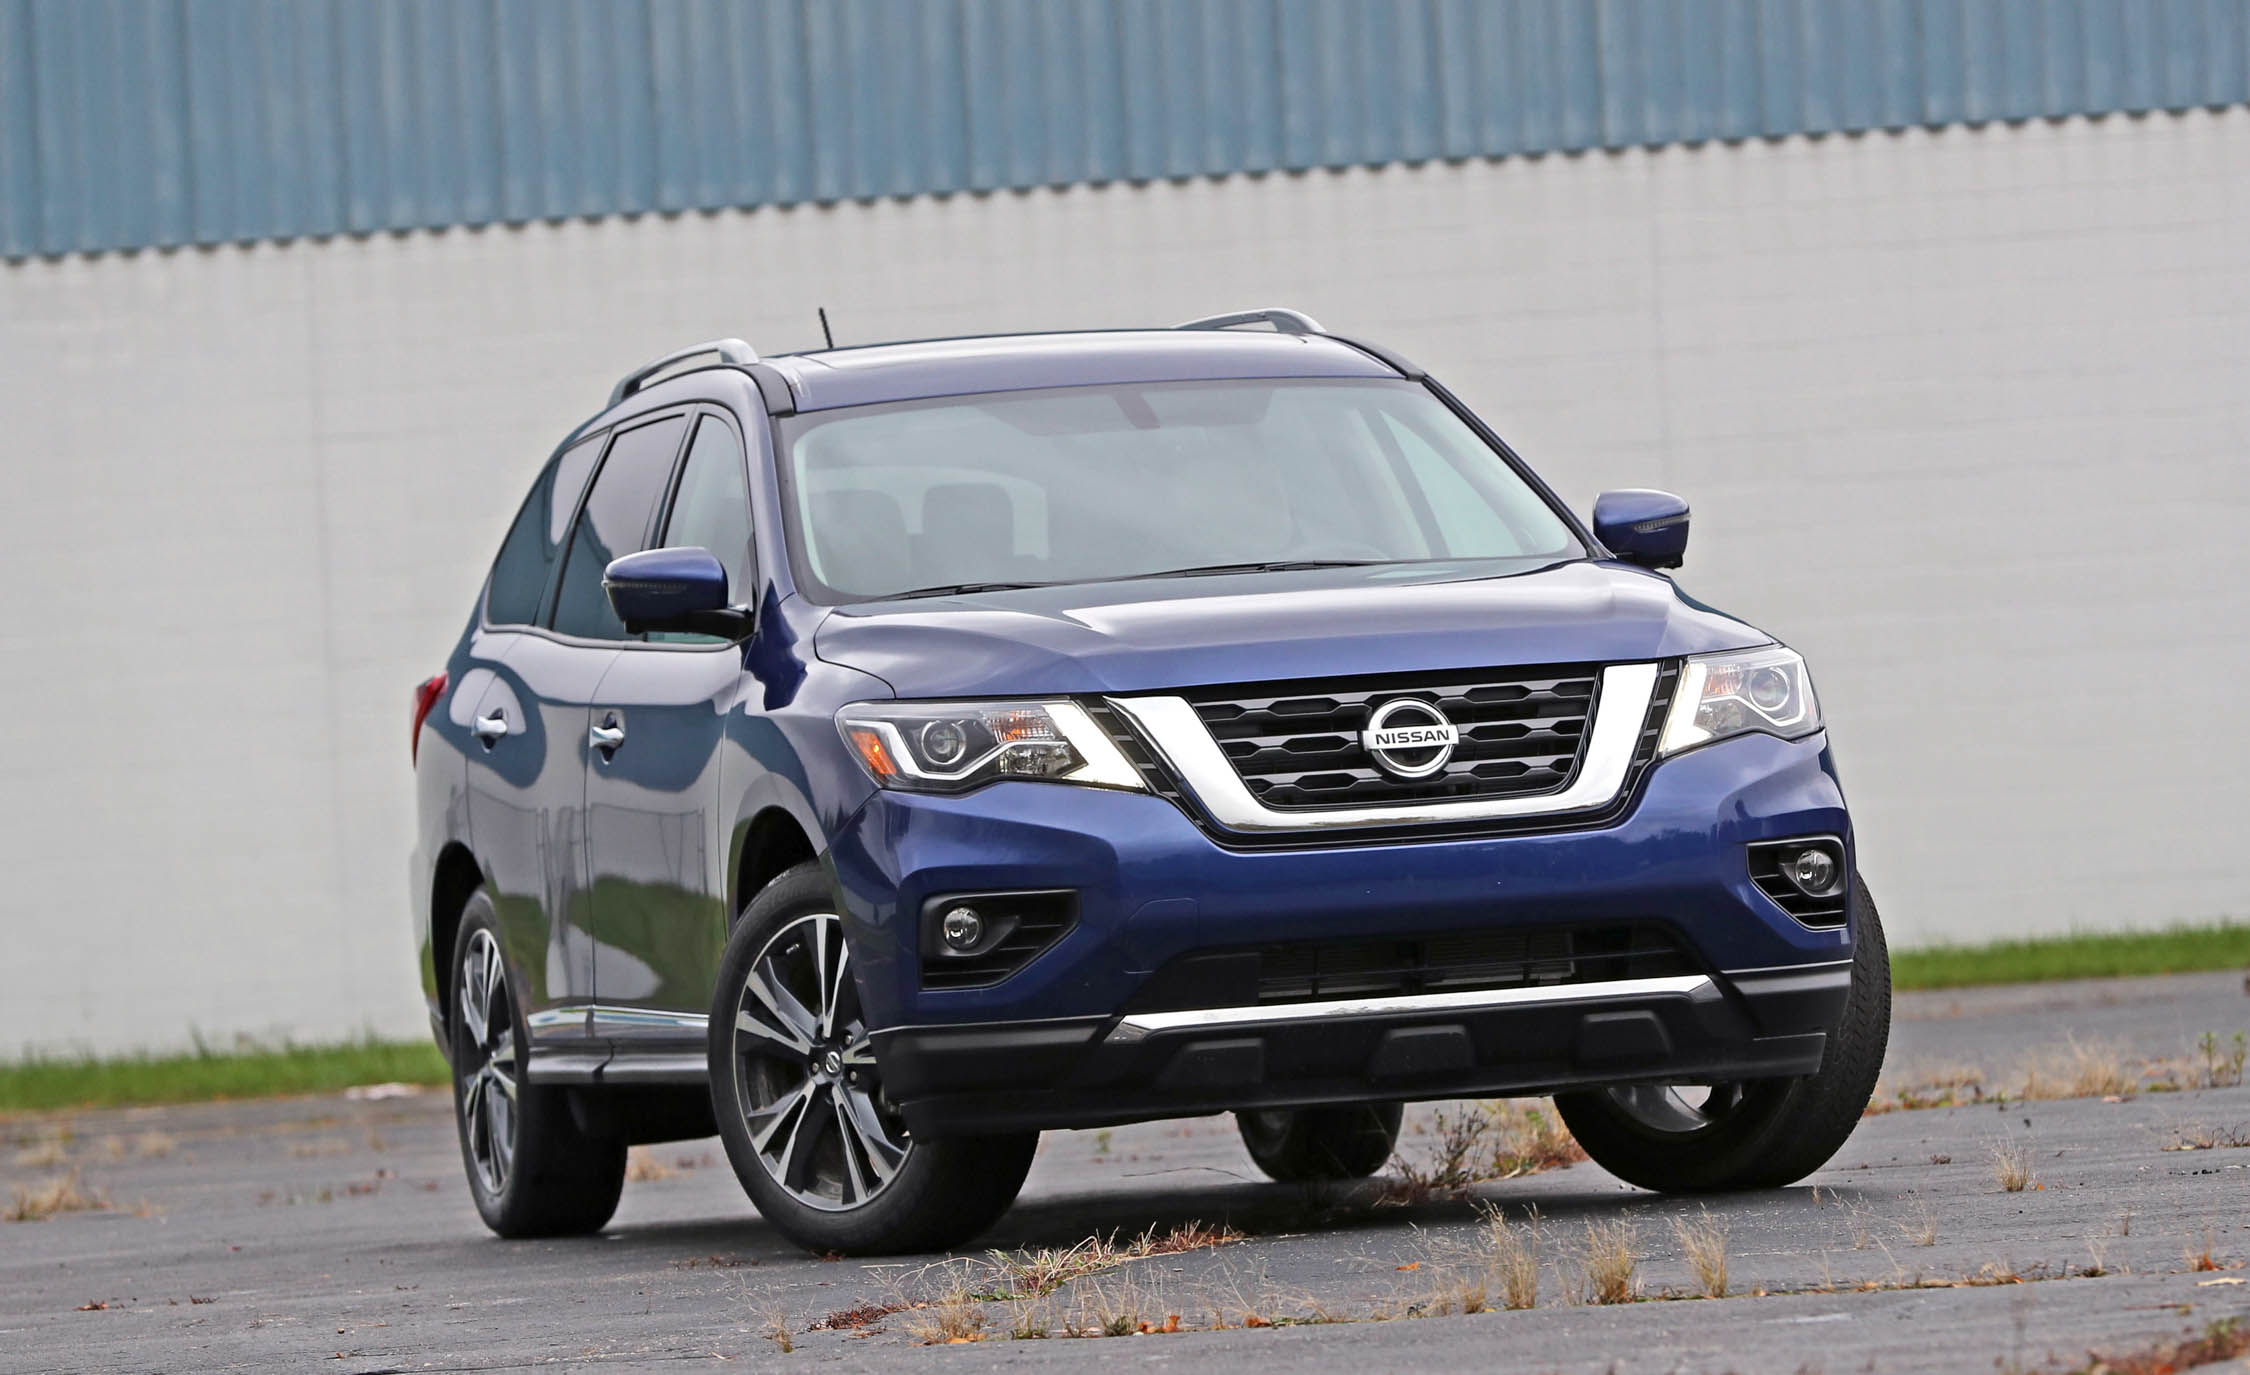 2017 Nissan Pathfinder Platinum 4WD (Photo 12 of 12)